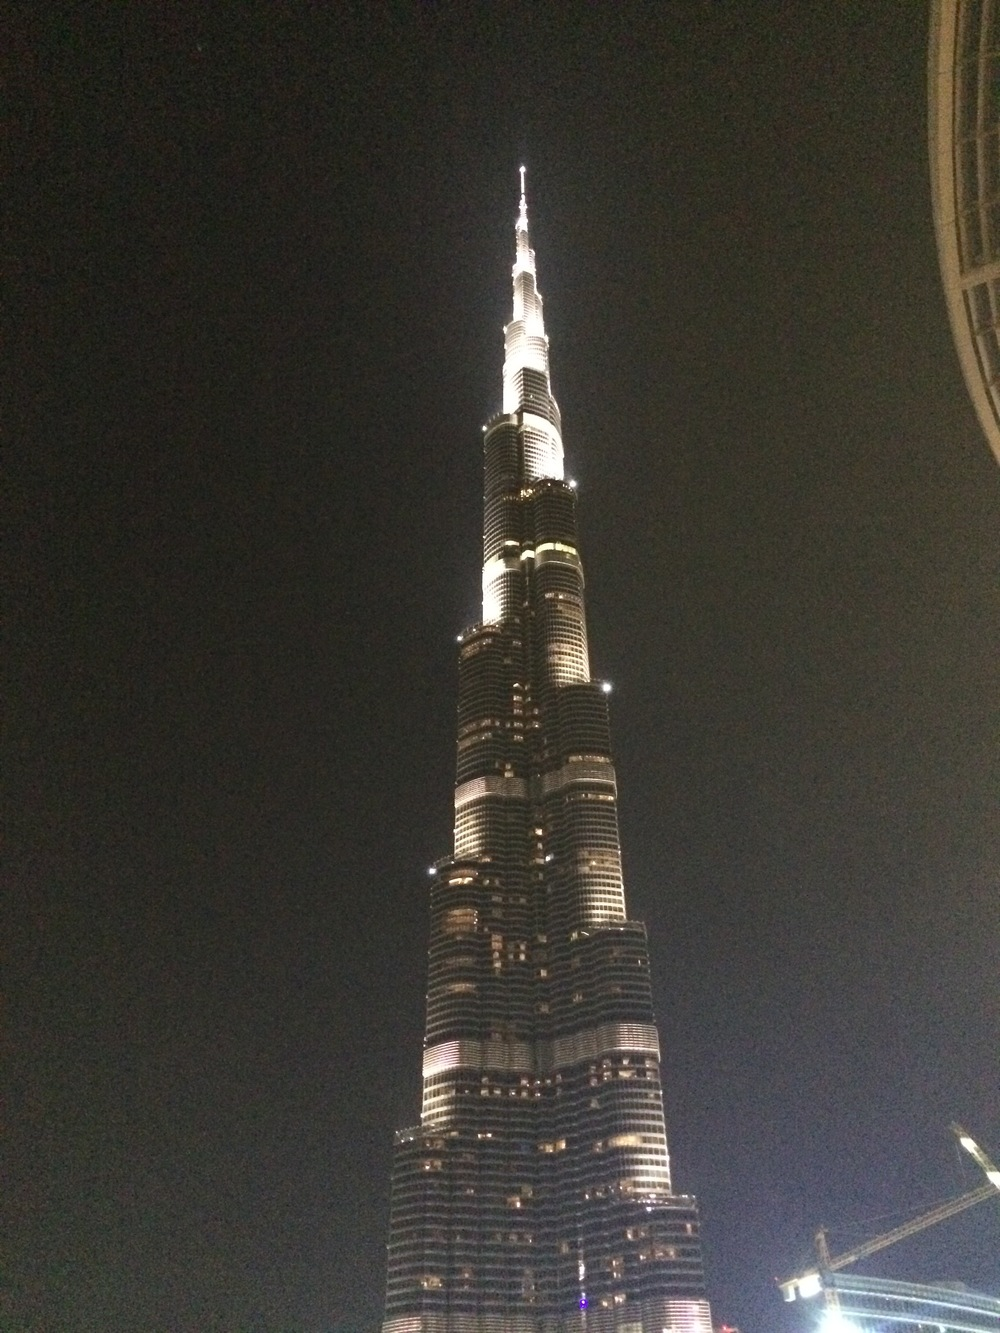 Just about half of one of the worlds tallest buildings.